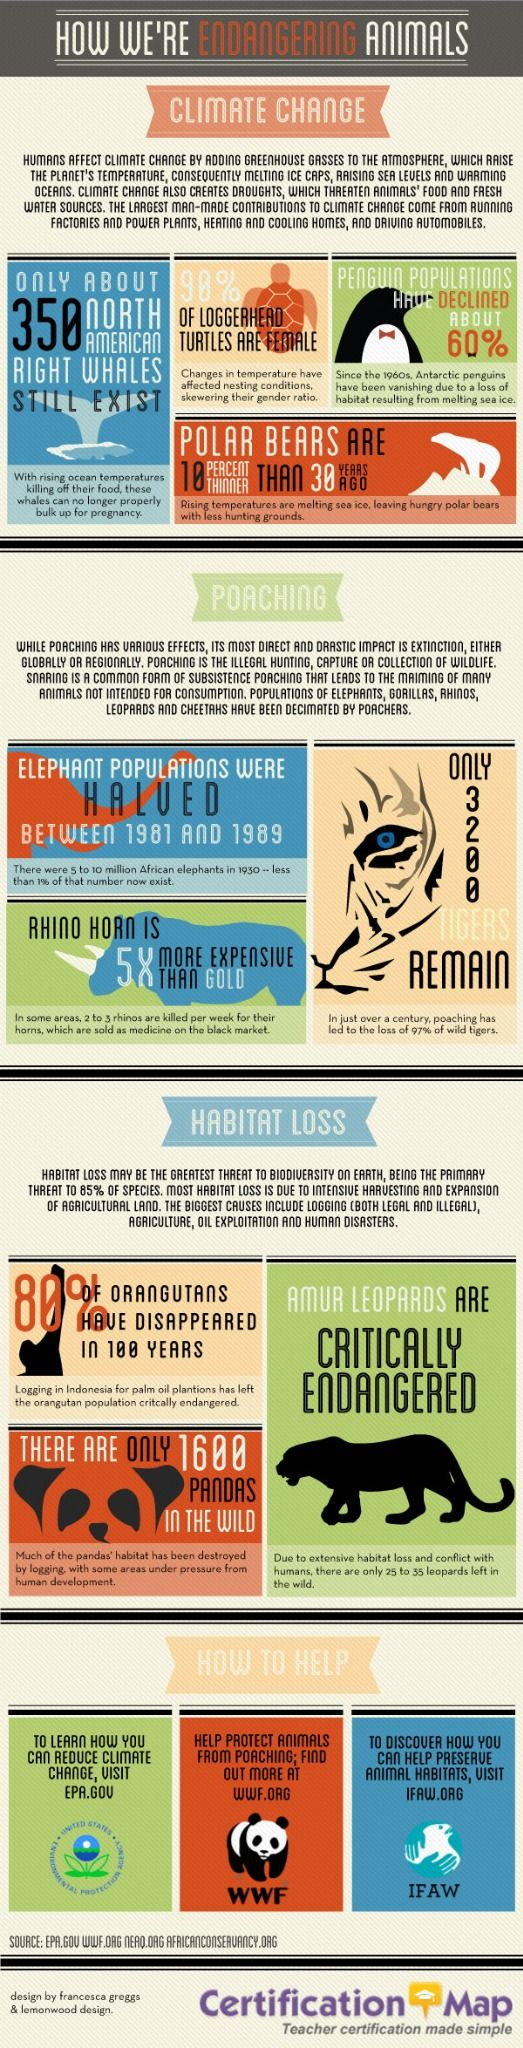 Infographic - how climate change is endangering animals.